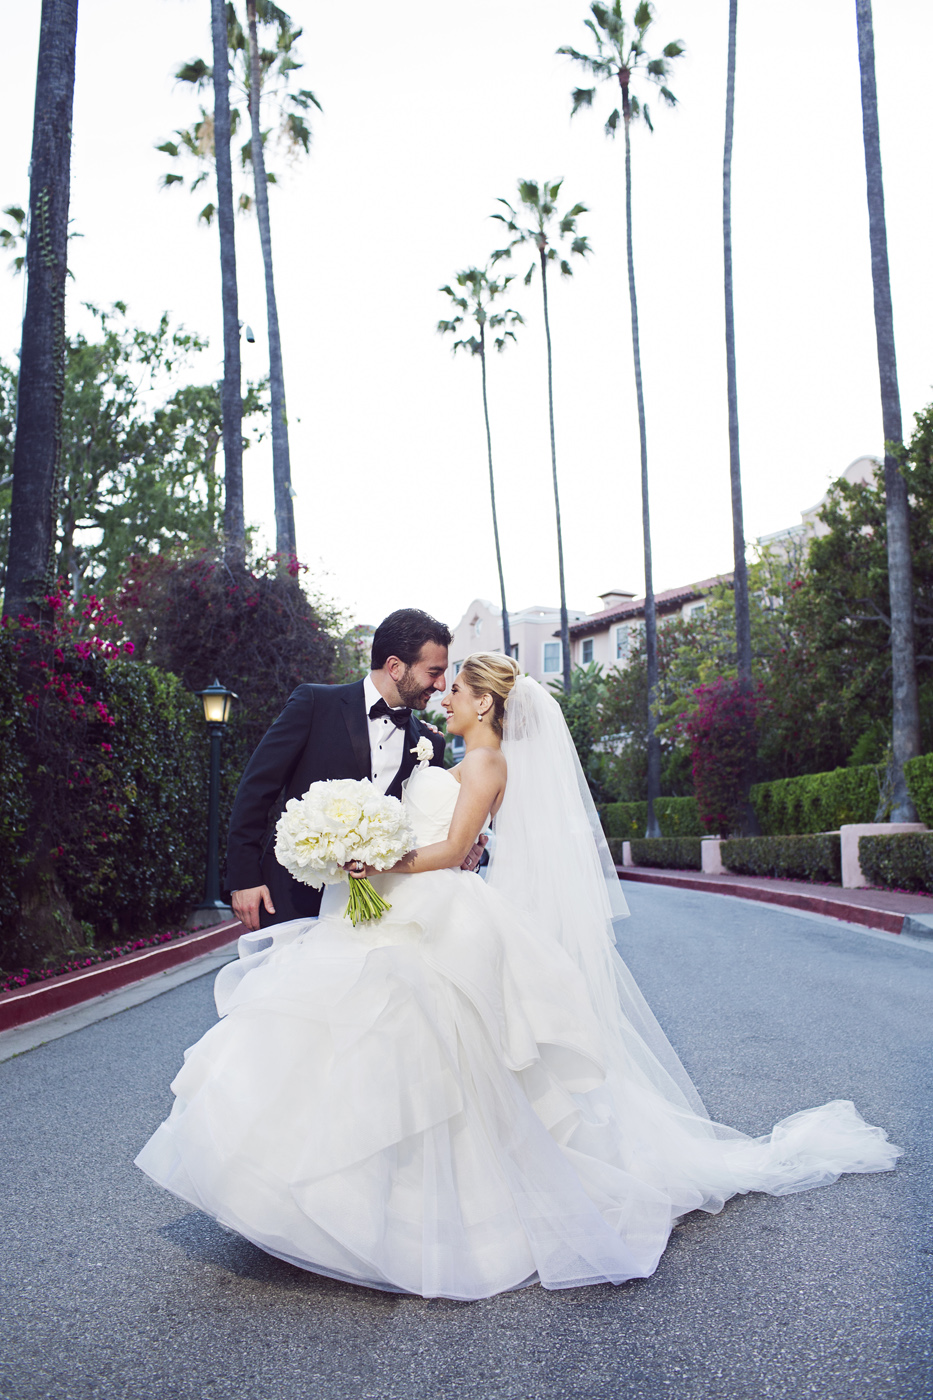 083DukePhotography_DukeImages_weddings_losangeles.jpg